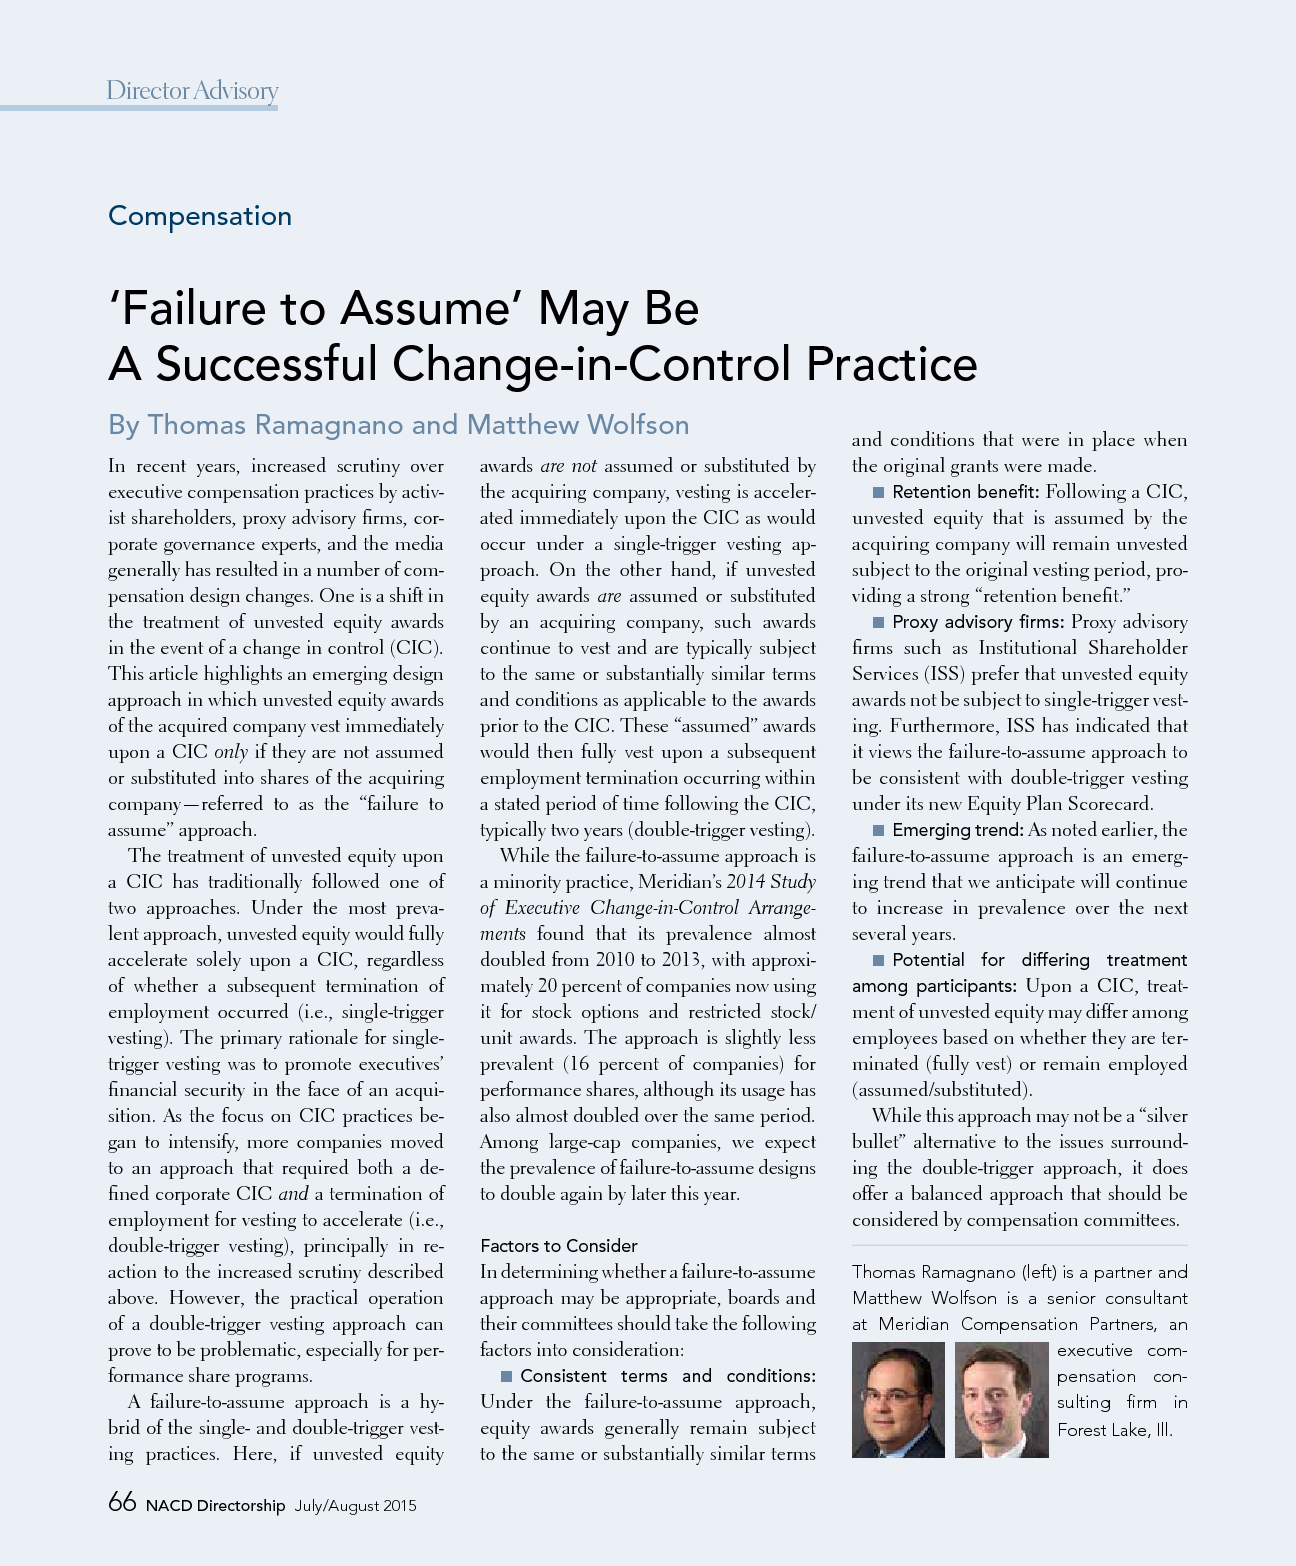 'Failure to Assume' May Be a Successful Change-in-Control Practice (PDF)